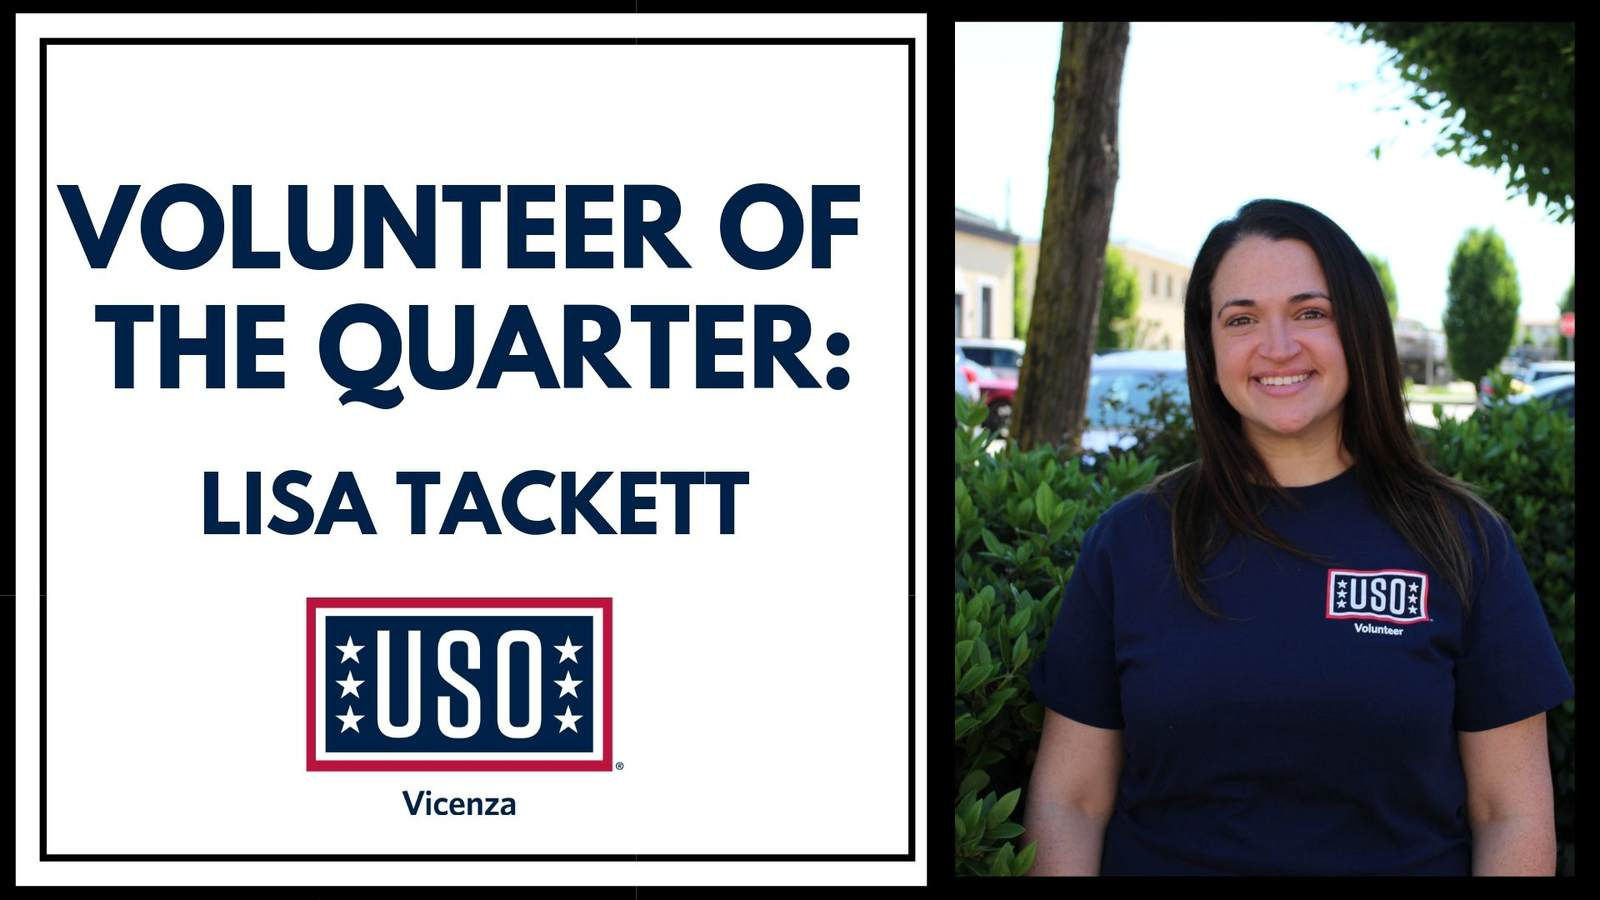 Volunteer of the Quarter for Summer 2019 - Lisa Tackett